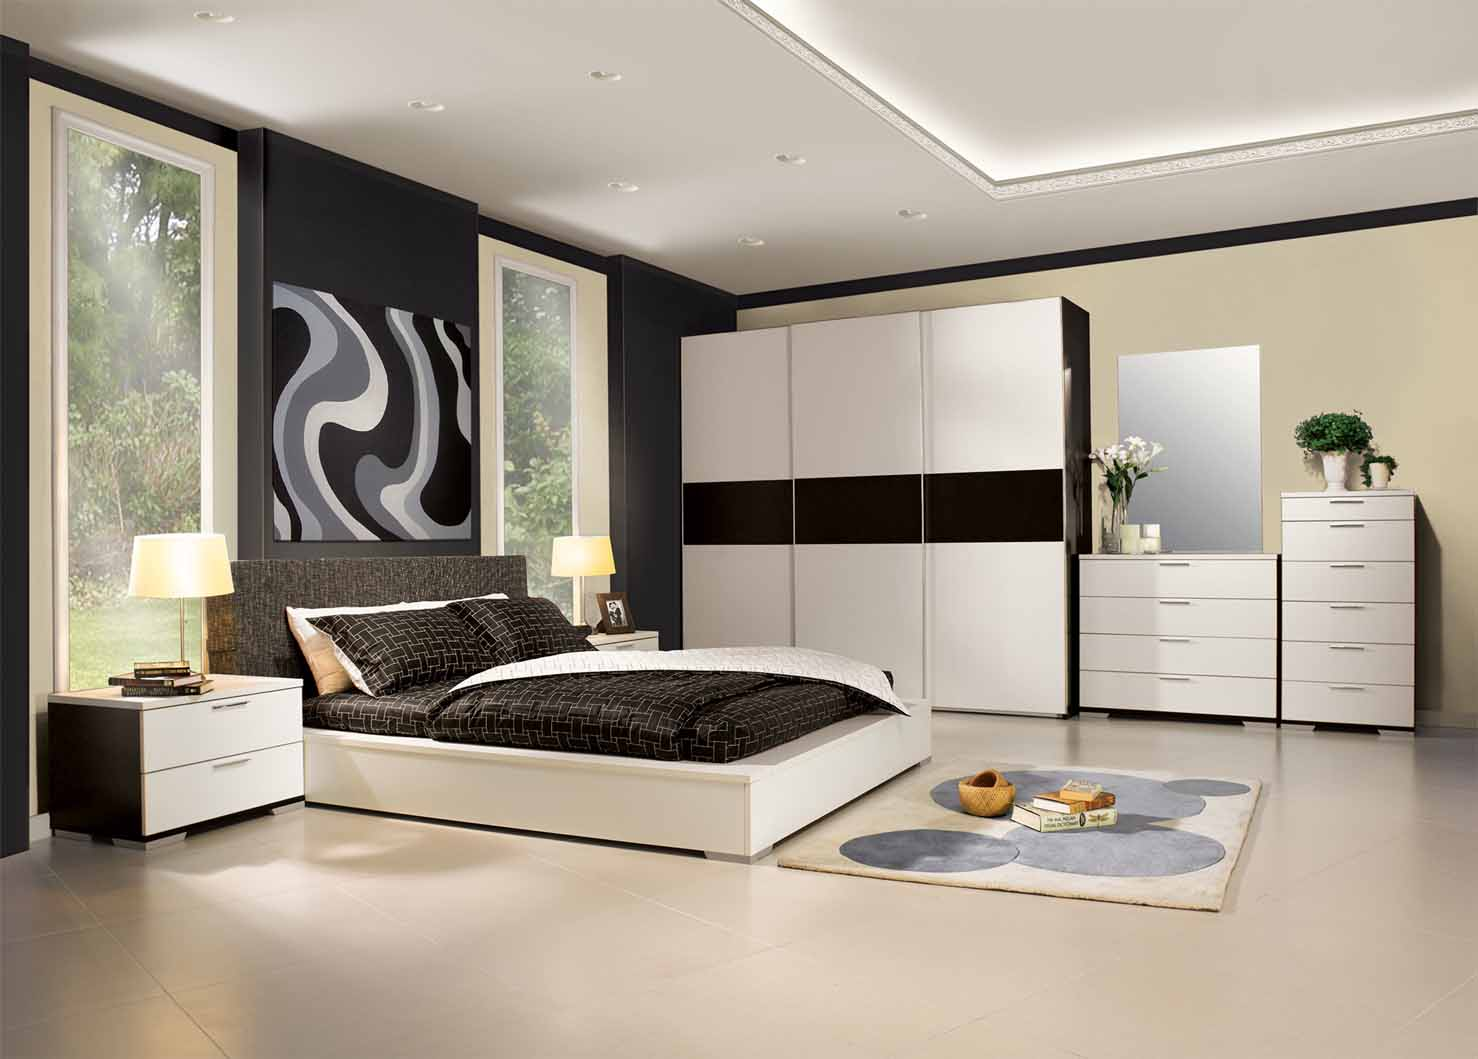 Black And White Small Bedroom Paint Ideas (Image 1 of 10)